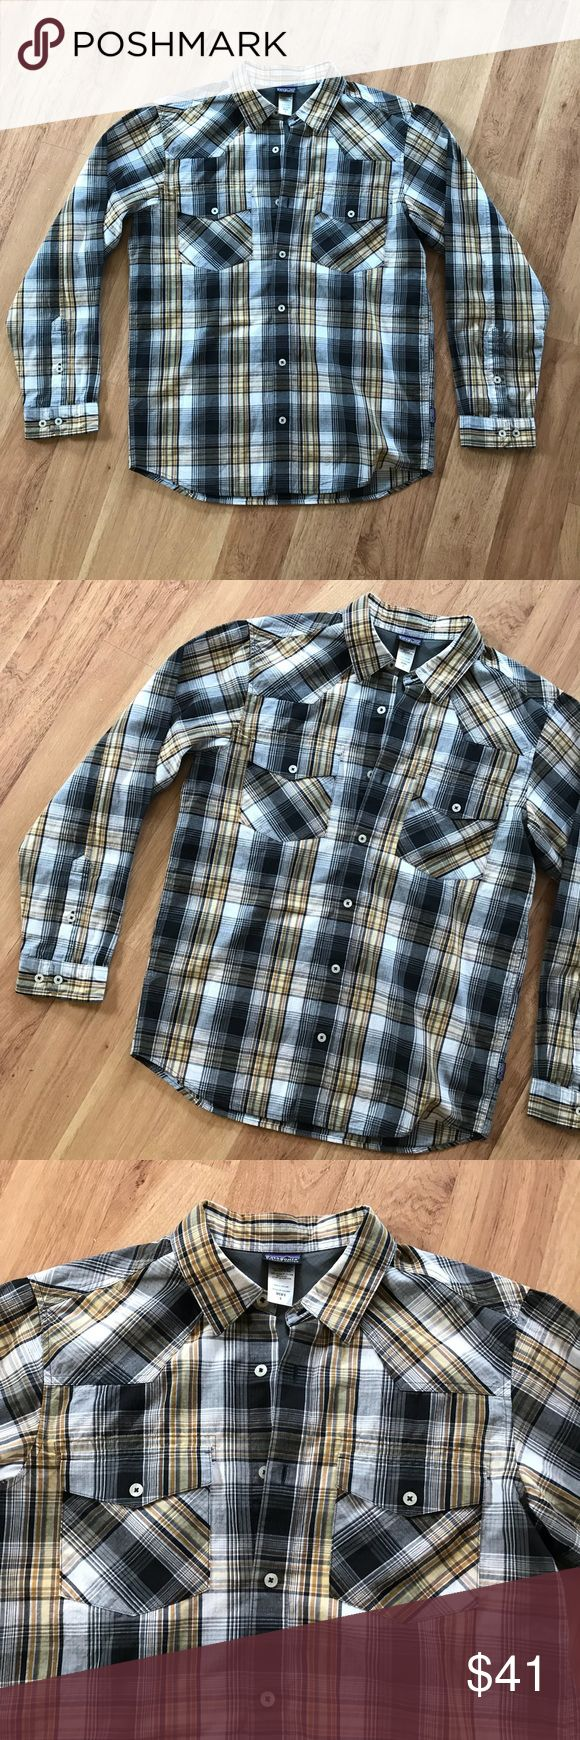 Men's Plaid Patagonia Organic Cotton Top Size S ⚜️I love receiving offers through the offer button!⚜️ Good condition, as seen in pictures! Fast same or next day shipping!📨 Open to offers but I don't negotiate in the comments so please use the offer button😊 Check out the rest of my closet for more Adidas, Lululemon, Tory Burch, Urban Outfitters, Free People, Anthropologie, Victoria's Secret, Sam Edelman, Topshop, Asos, Revolve, Brandy Melville, Zara, and American Apparel! Patagonia Shirts